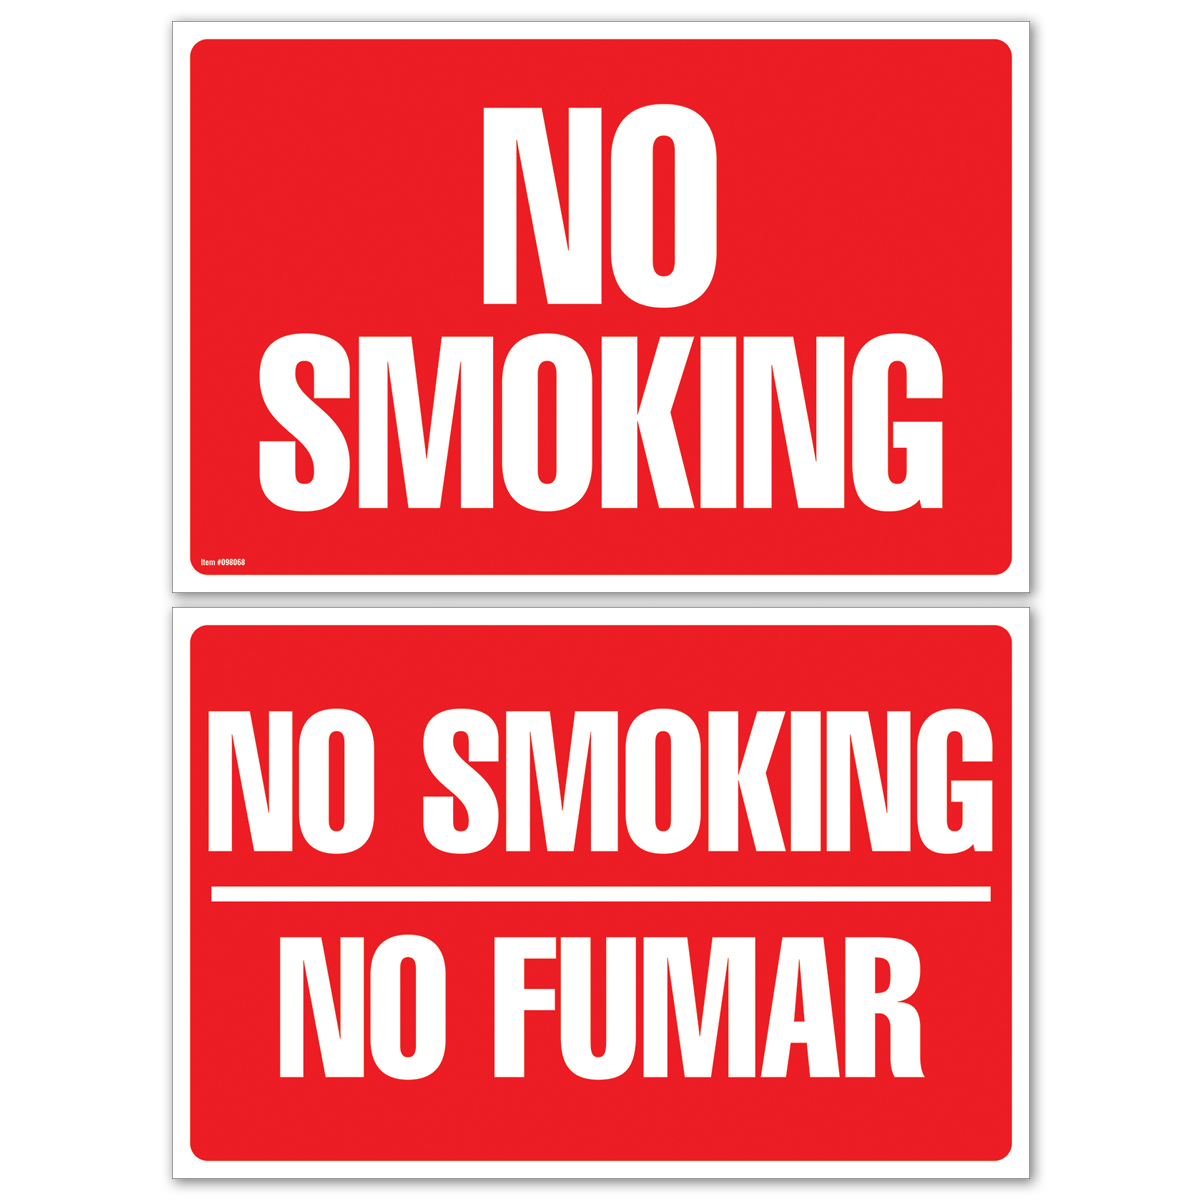 NO SMOKING |NO SMOKING|NO FUMAR - 098068